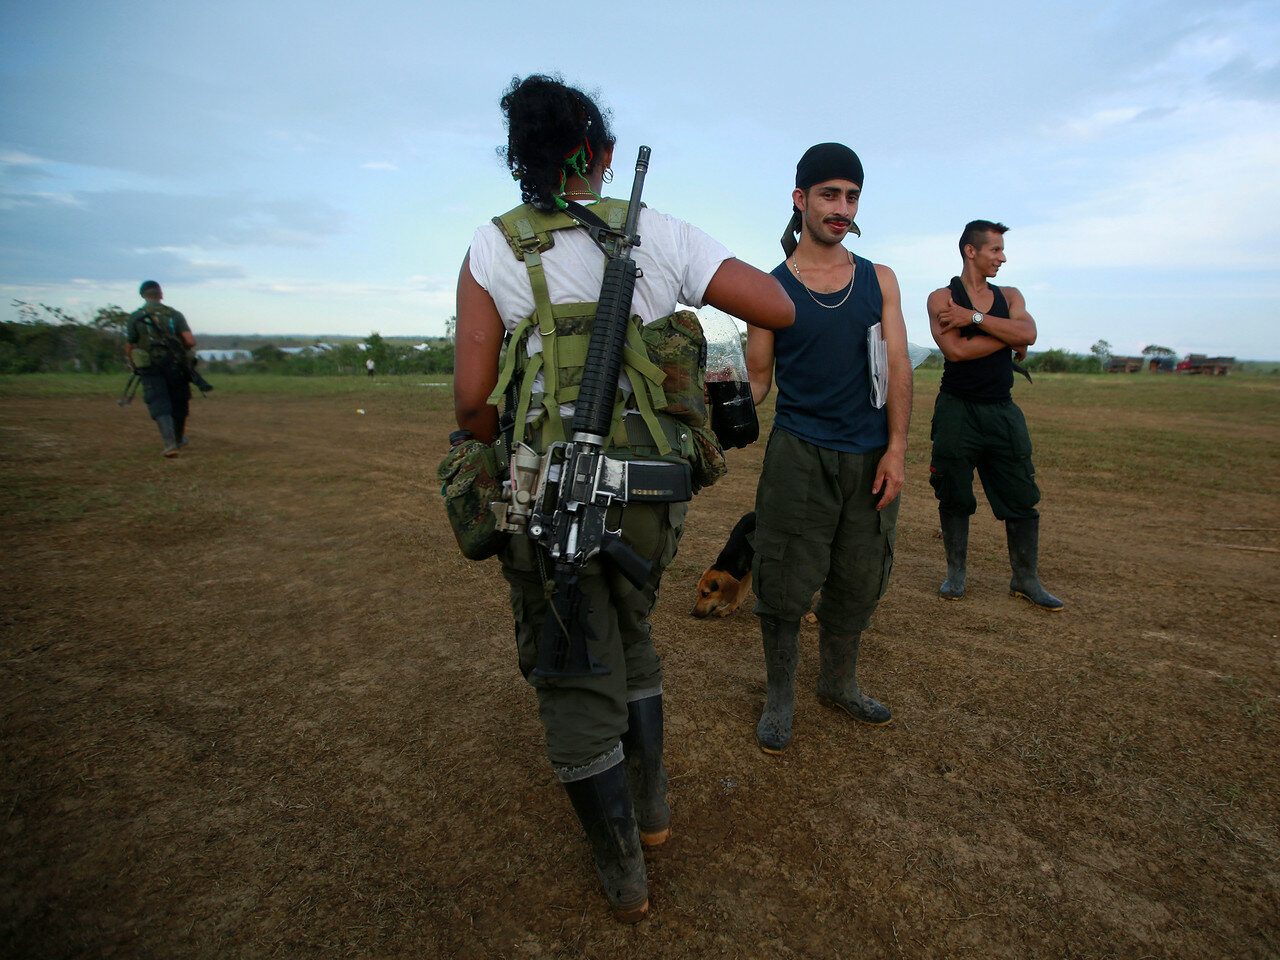 Fighters from FARC arriving at the camp where they prepare for an upcoming congress ratifying a peace deal with the government near El Diamante in Yari Plains, Colombia